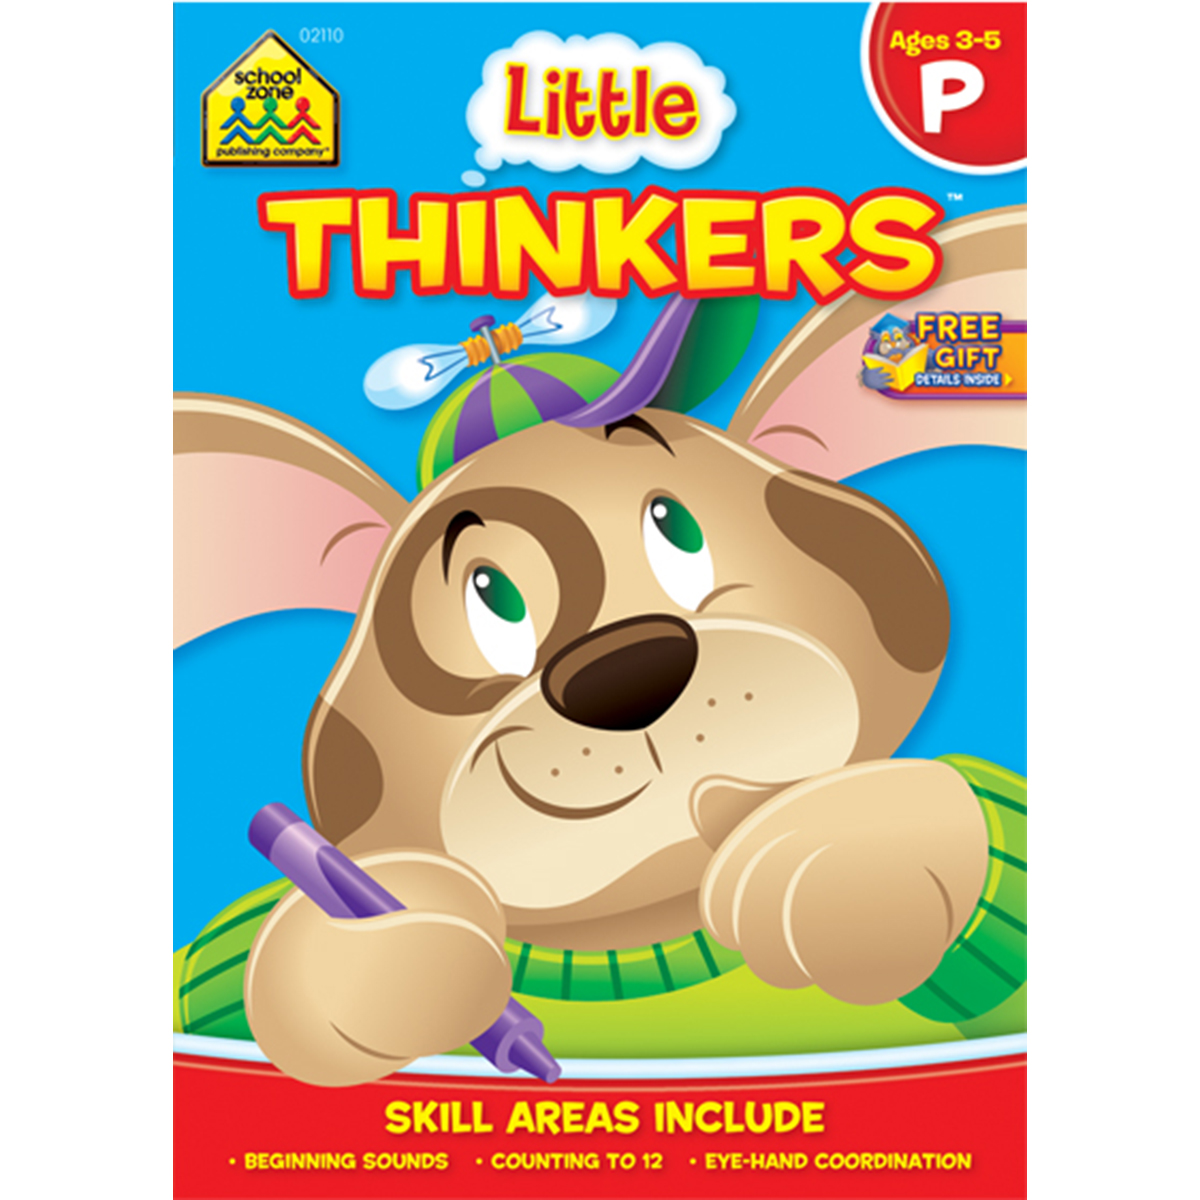 Preschool Workbooks, 32 Pages, Little Thinkers Preschool by School Zone